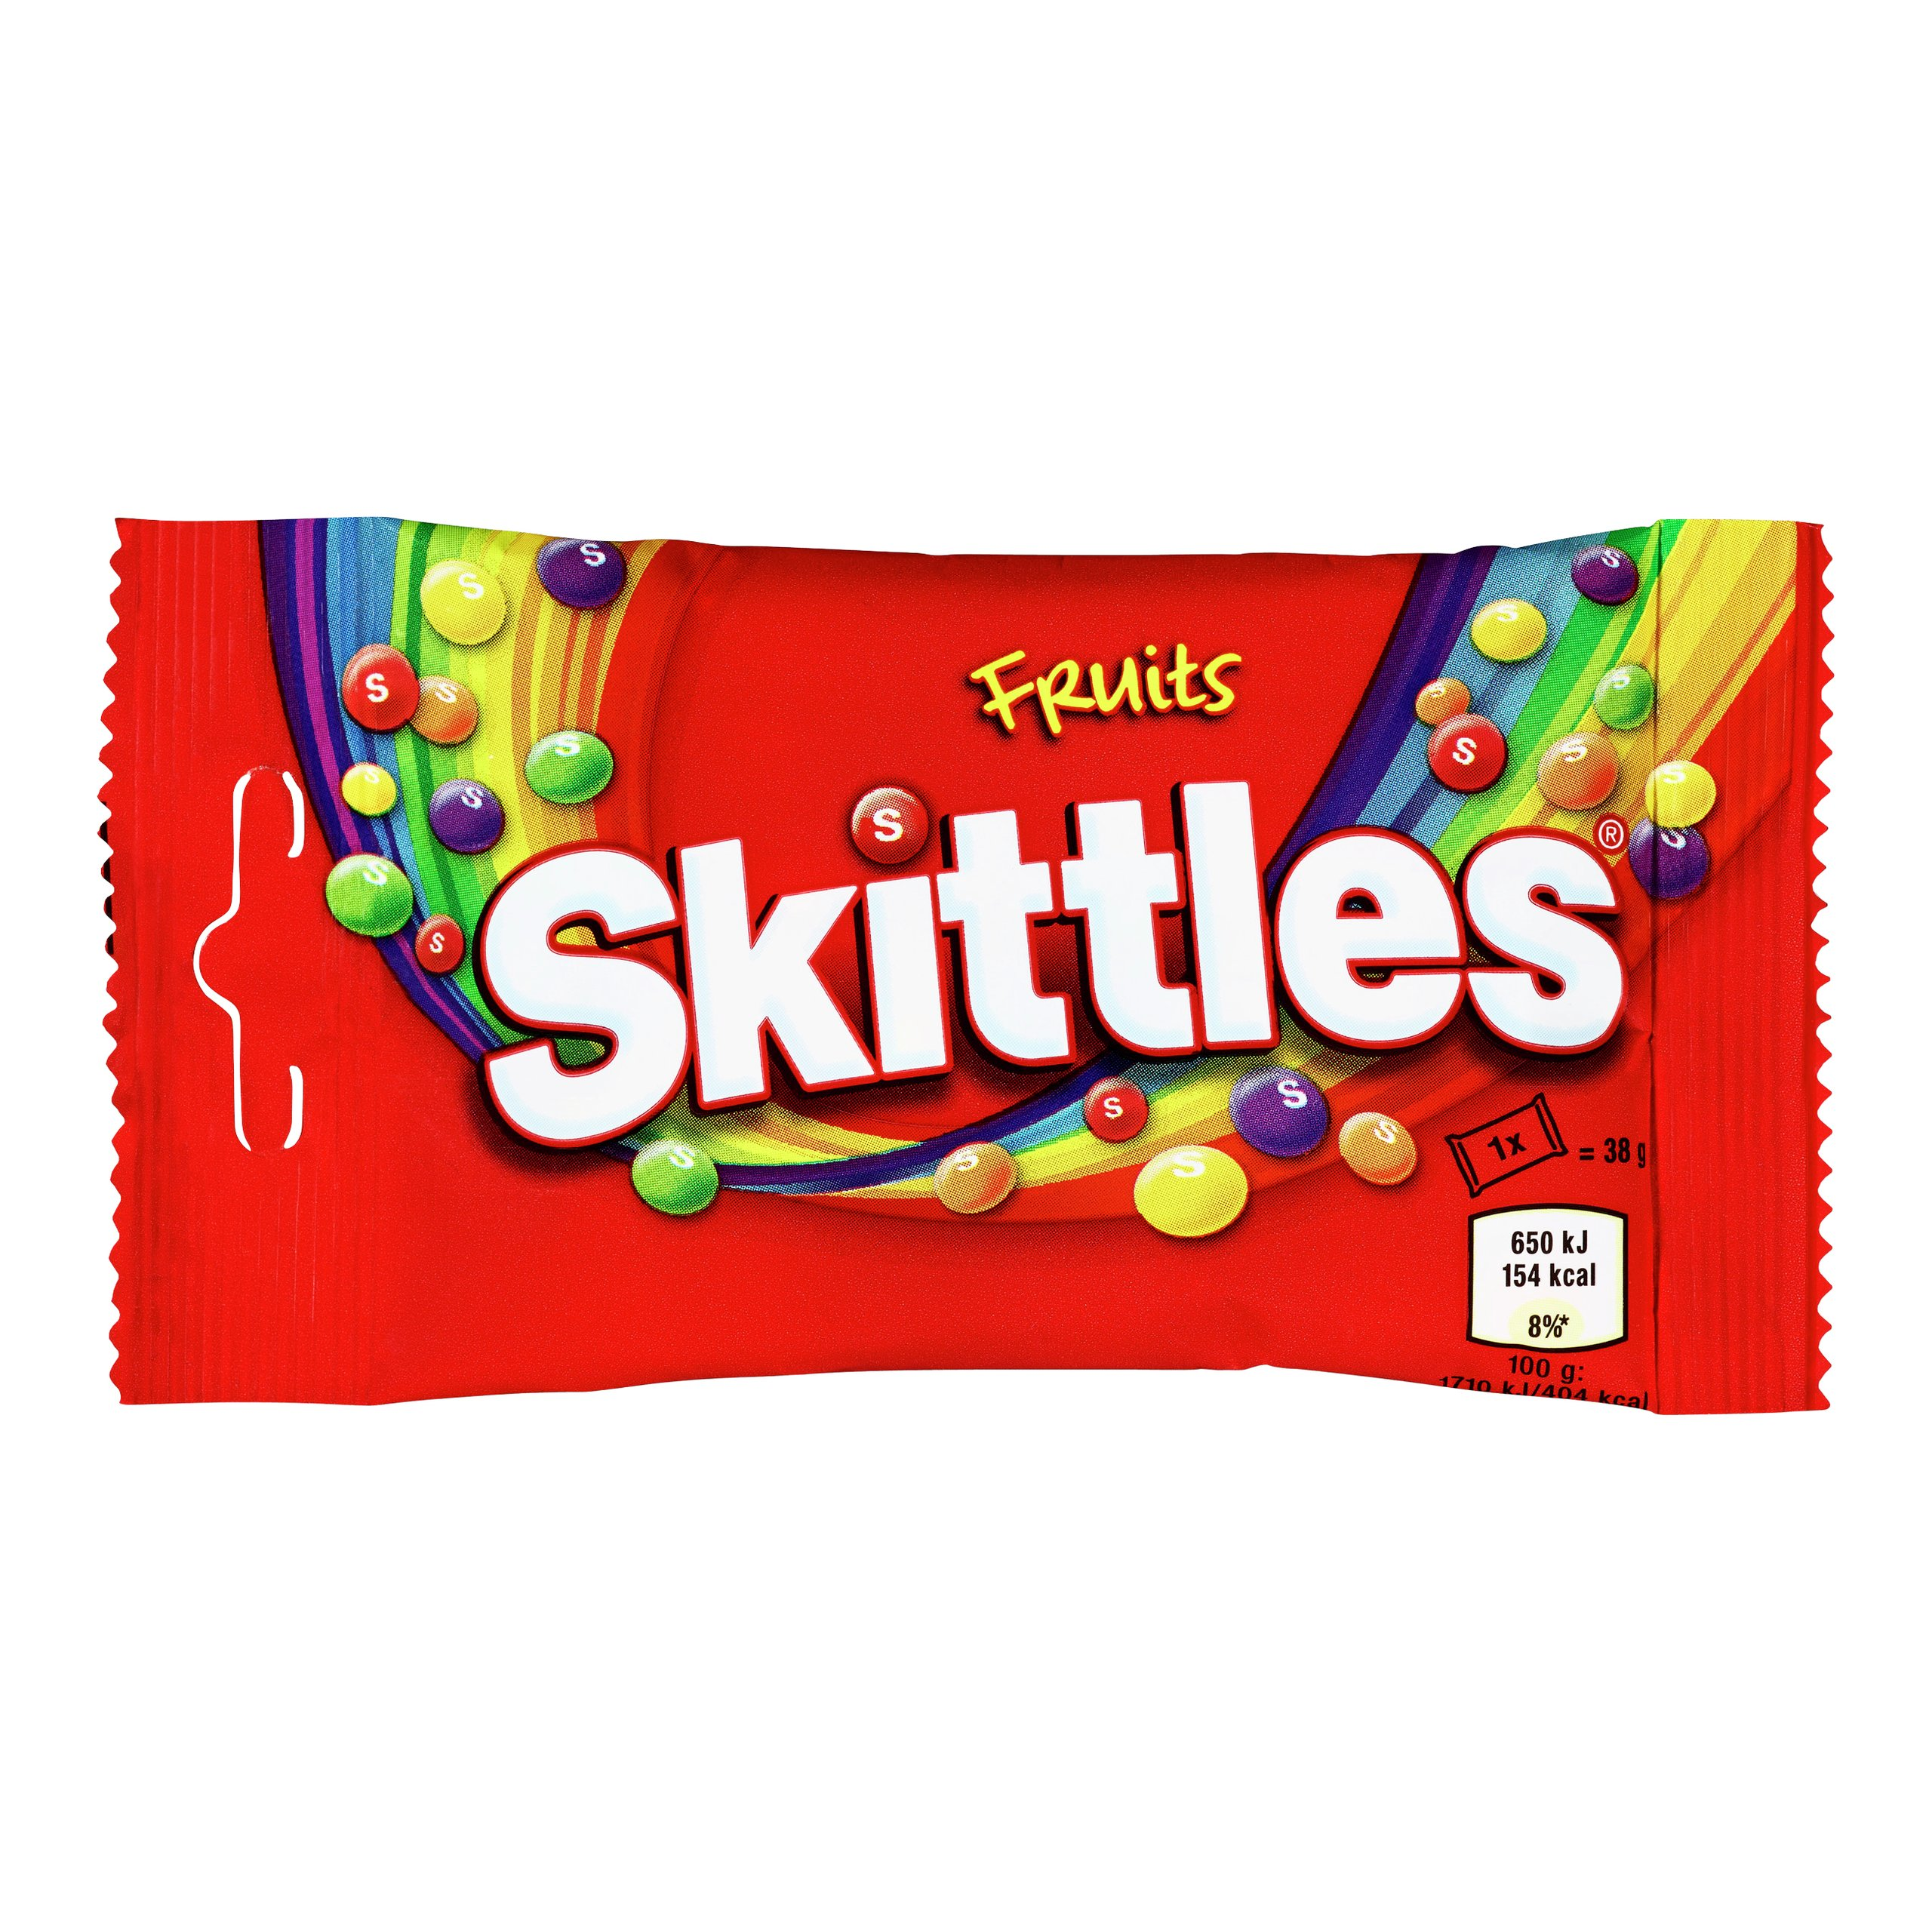 SKITTLES FRUITS 38G-DRO1159